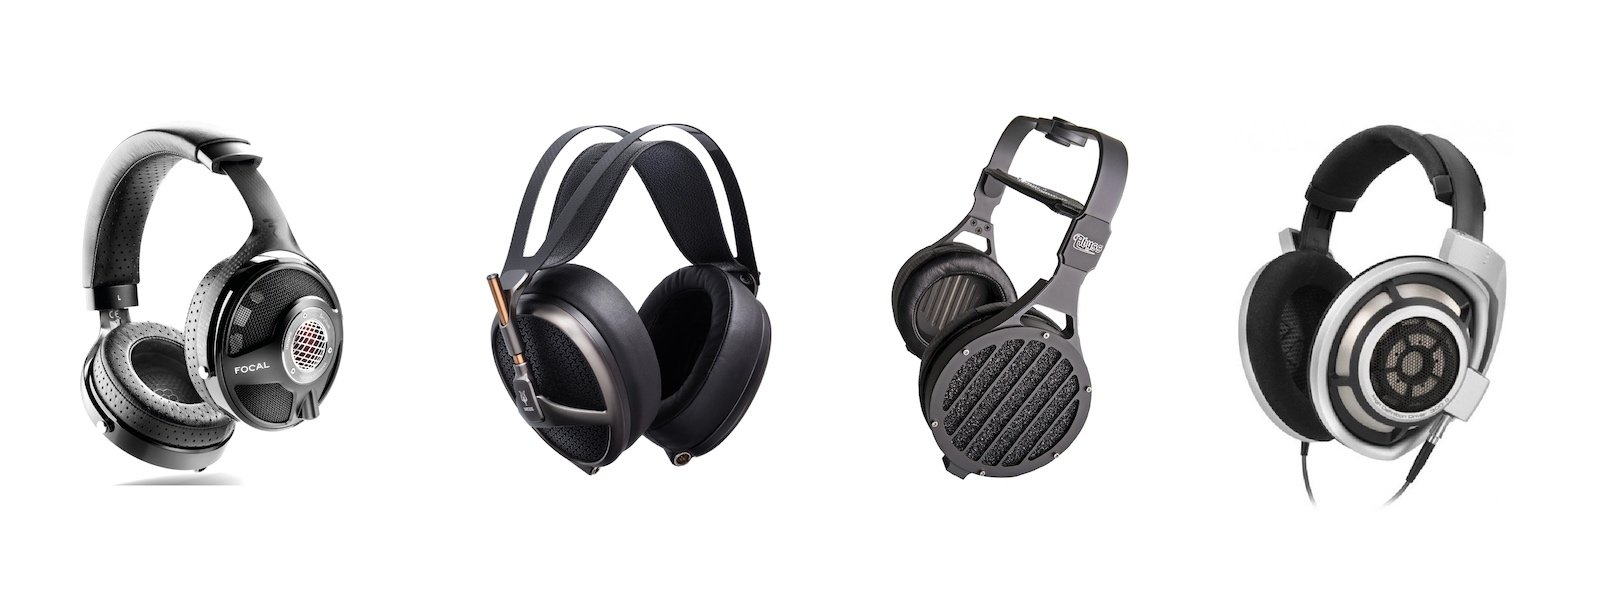 High-End Headphone Roundup: Meze Empyrean, Focal Utopia, Abyss AB-1266 Phi CC